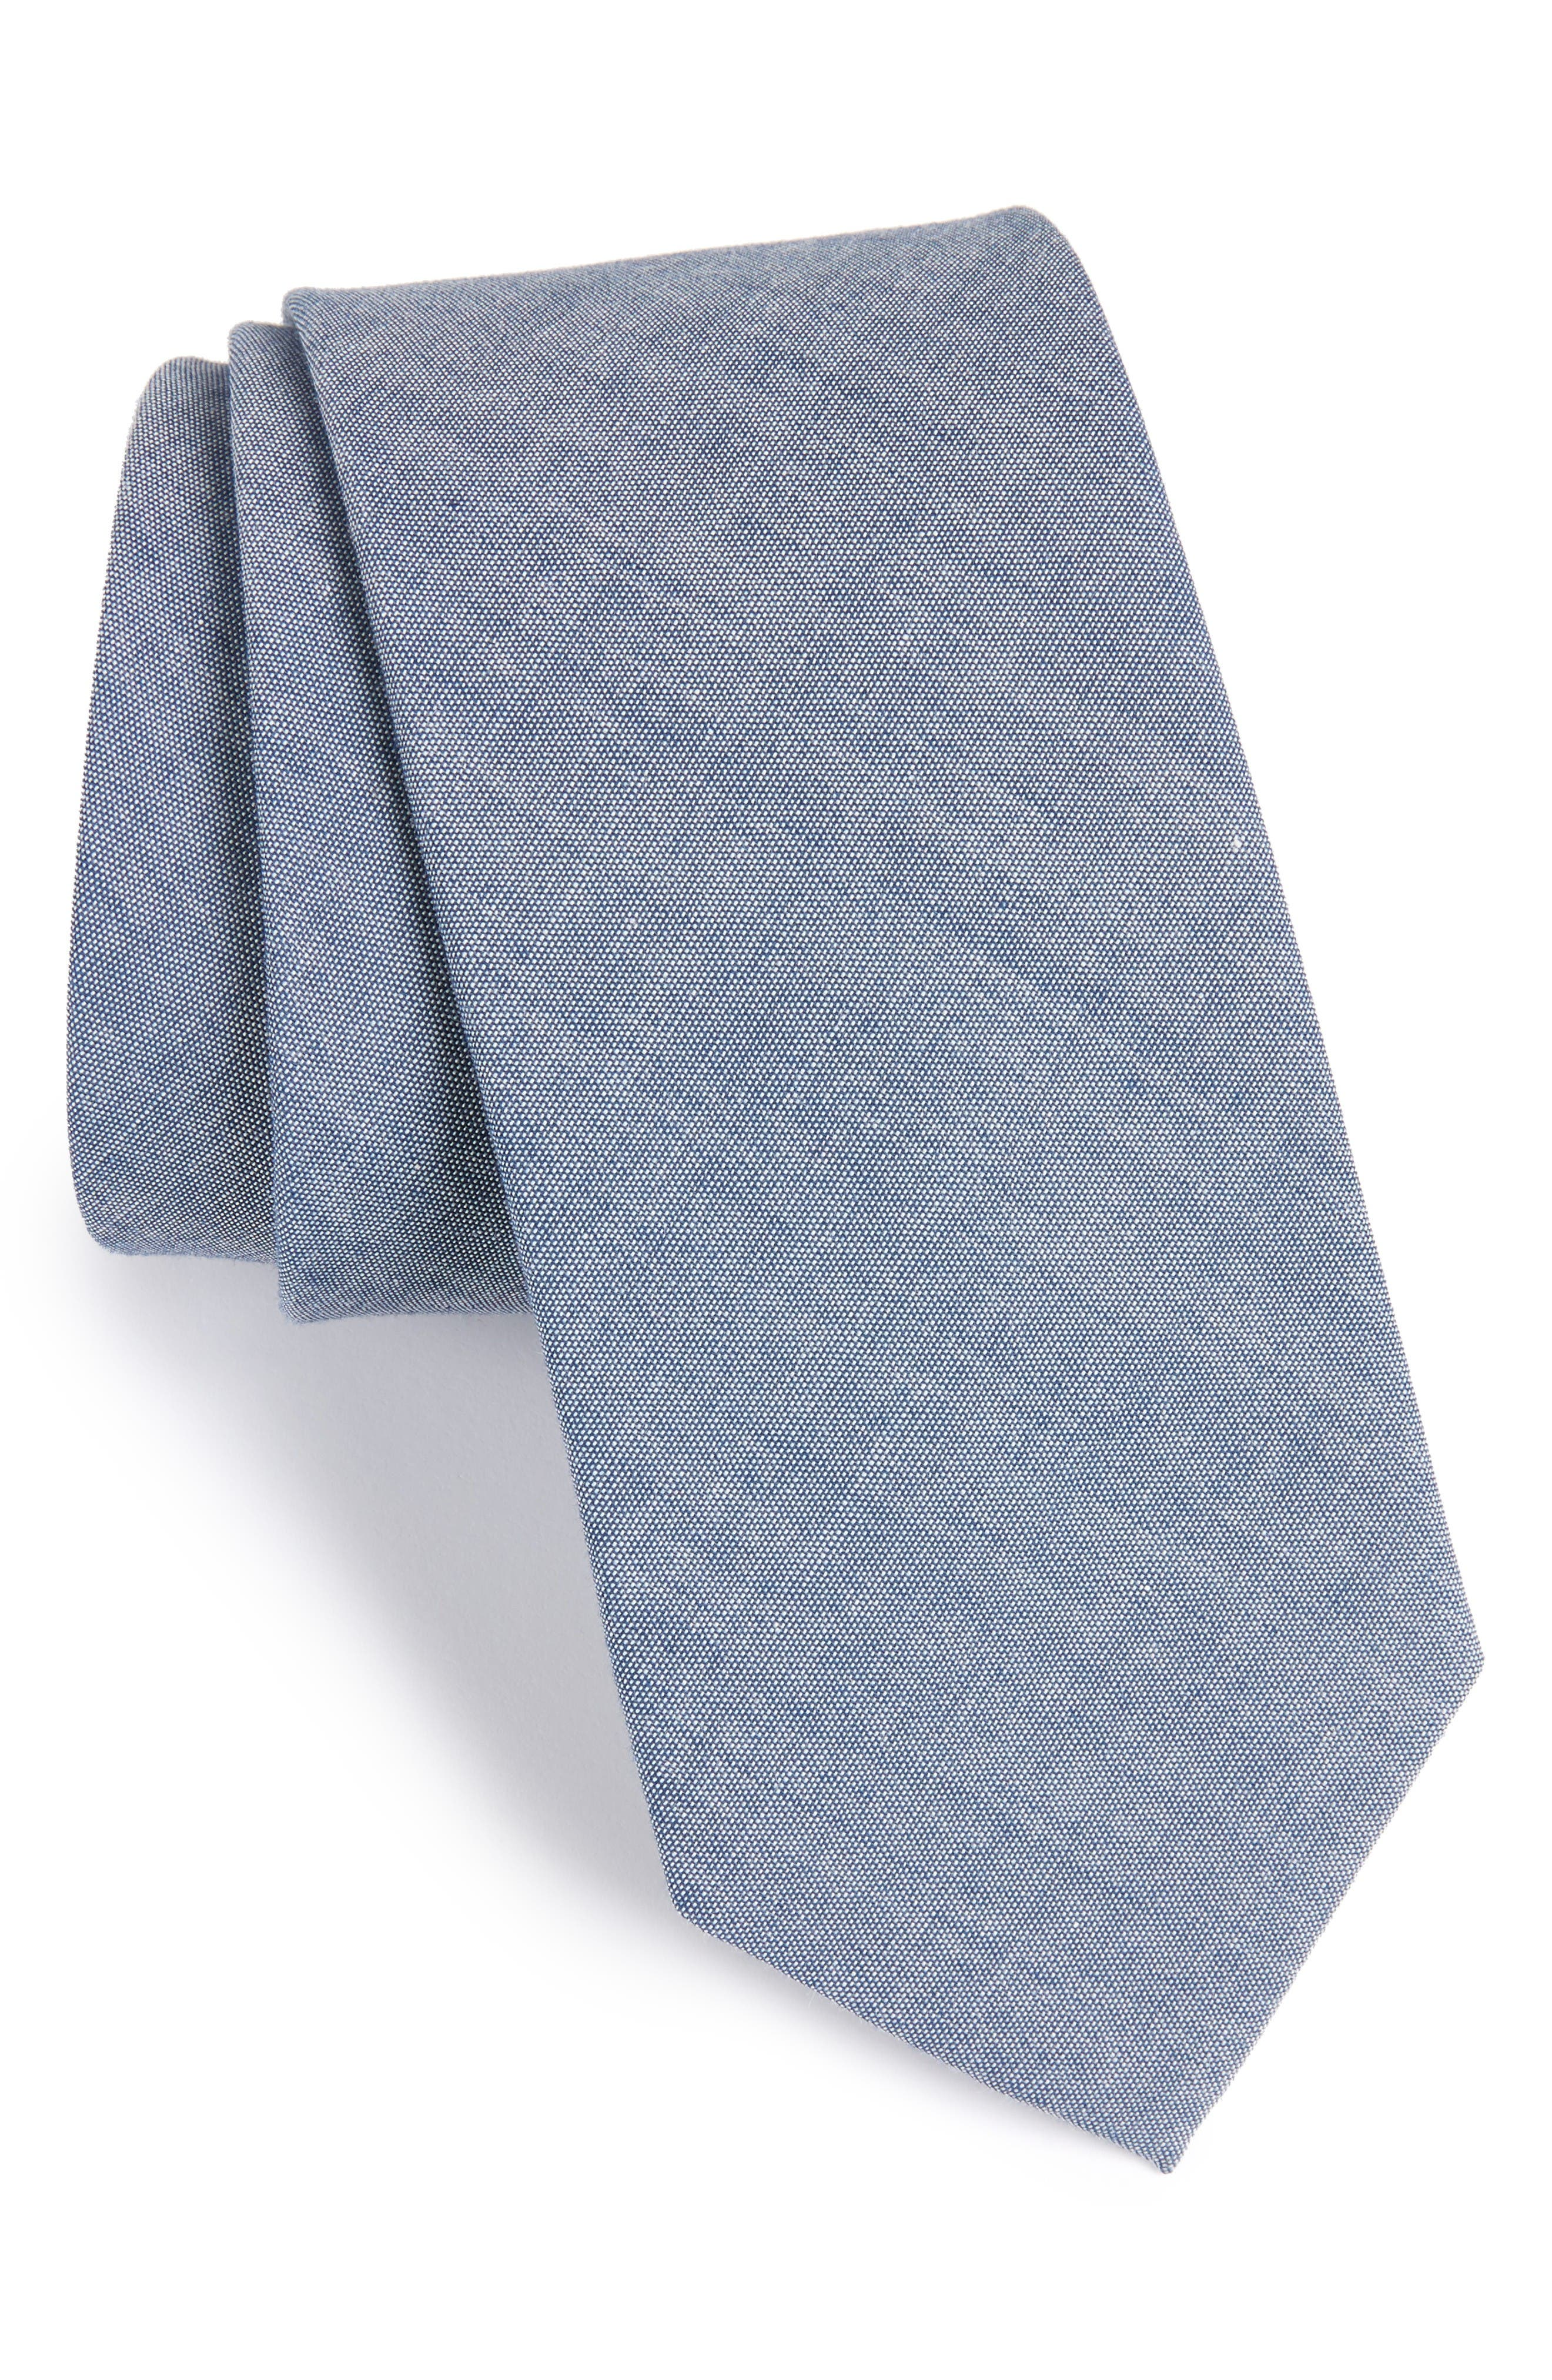 Main Image - The Tie Bar Classic Chambray Cotton Tie